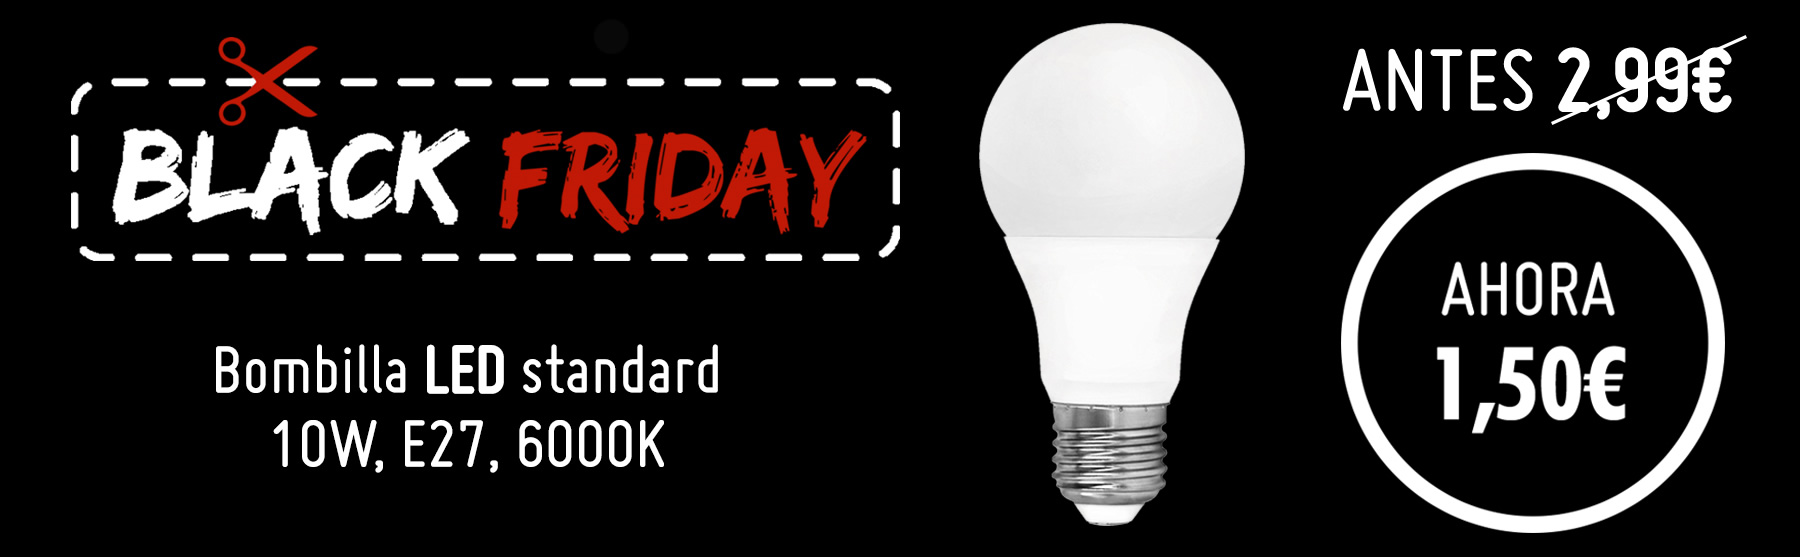 Bombilla LED rebejada por Black Friday.